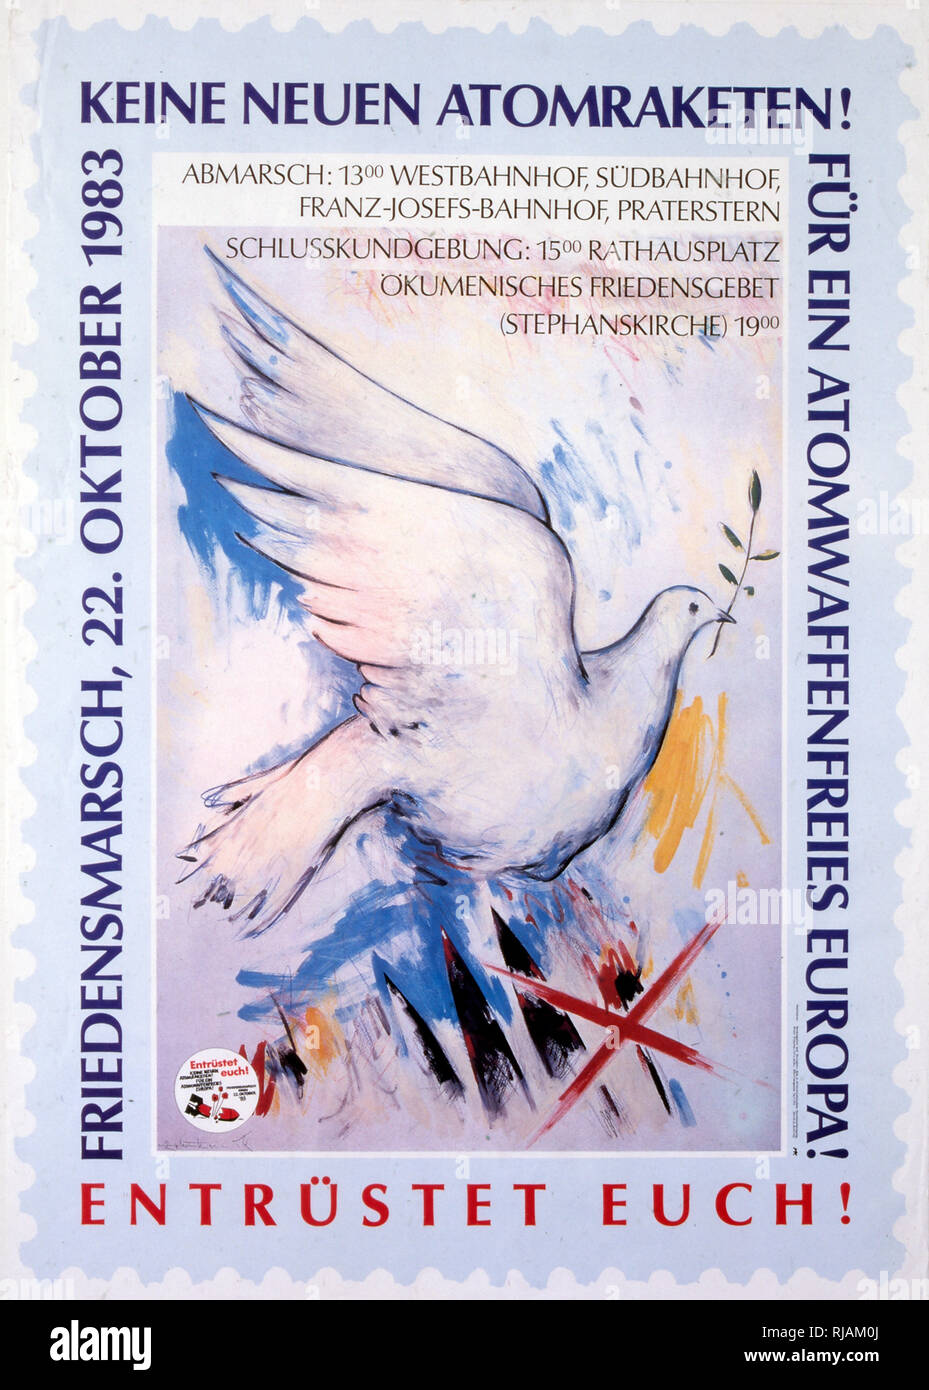 No new nuclear missiles' (keine neuen atomraketen), German,1983 poster, for a freedom march in berlin - Stock Image